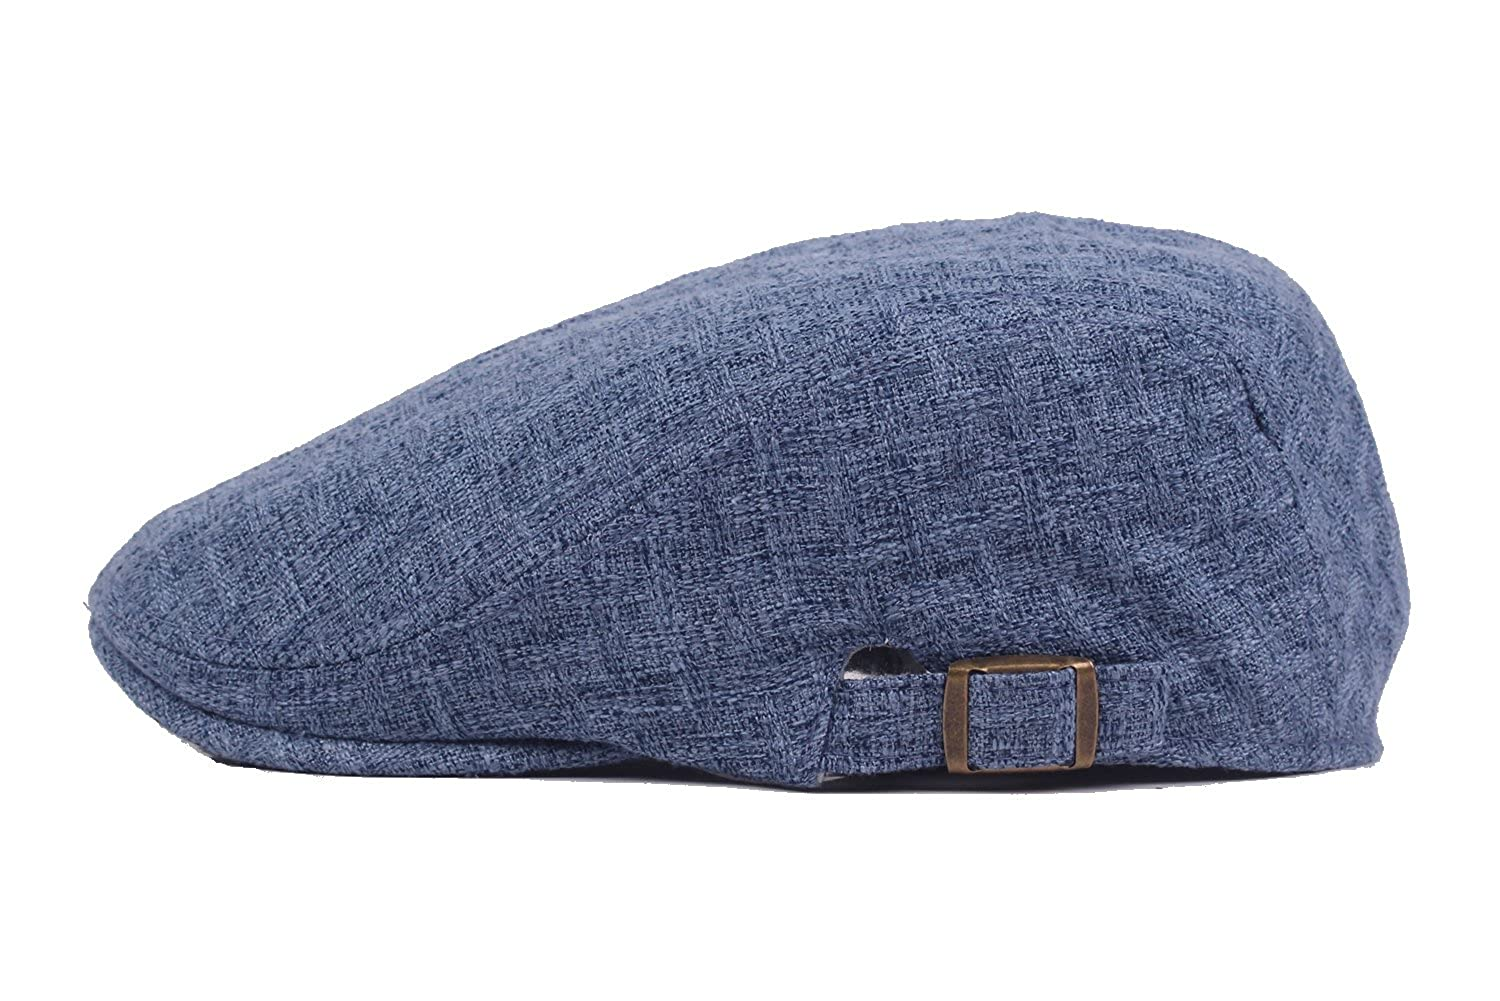 69b182c5f29 Newsboy Irish Cabbie Scally Cap Ivy League Duckbill Hats Throwback Vintage  Flair Comfortable Fit Blue  Amazon.in  Clothing   Accessories